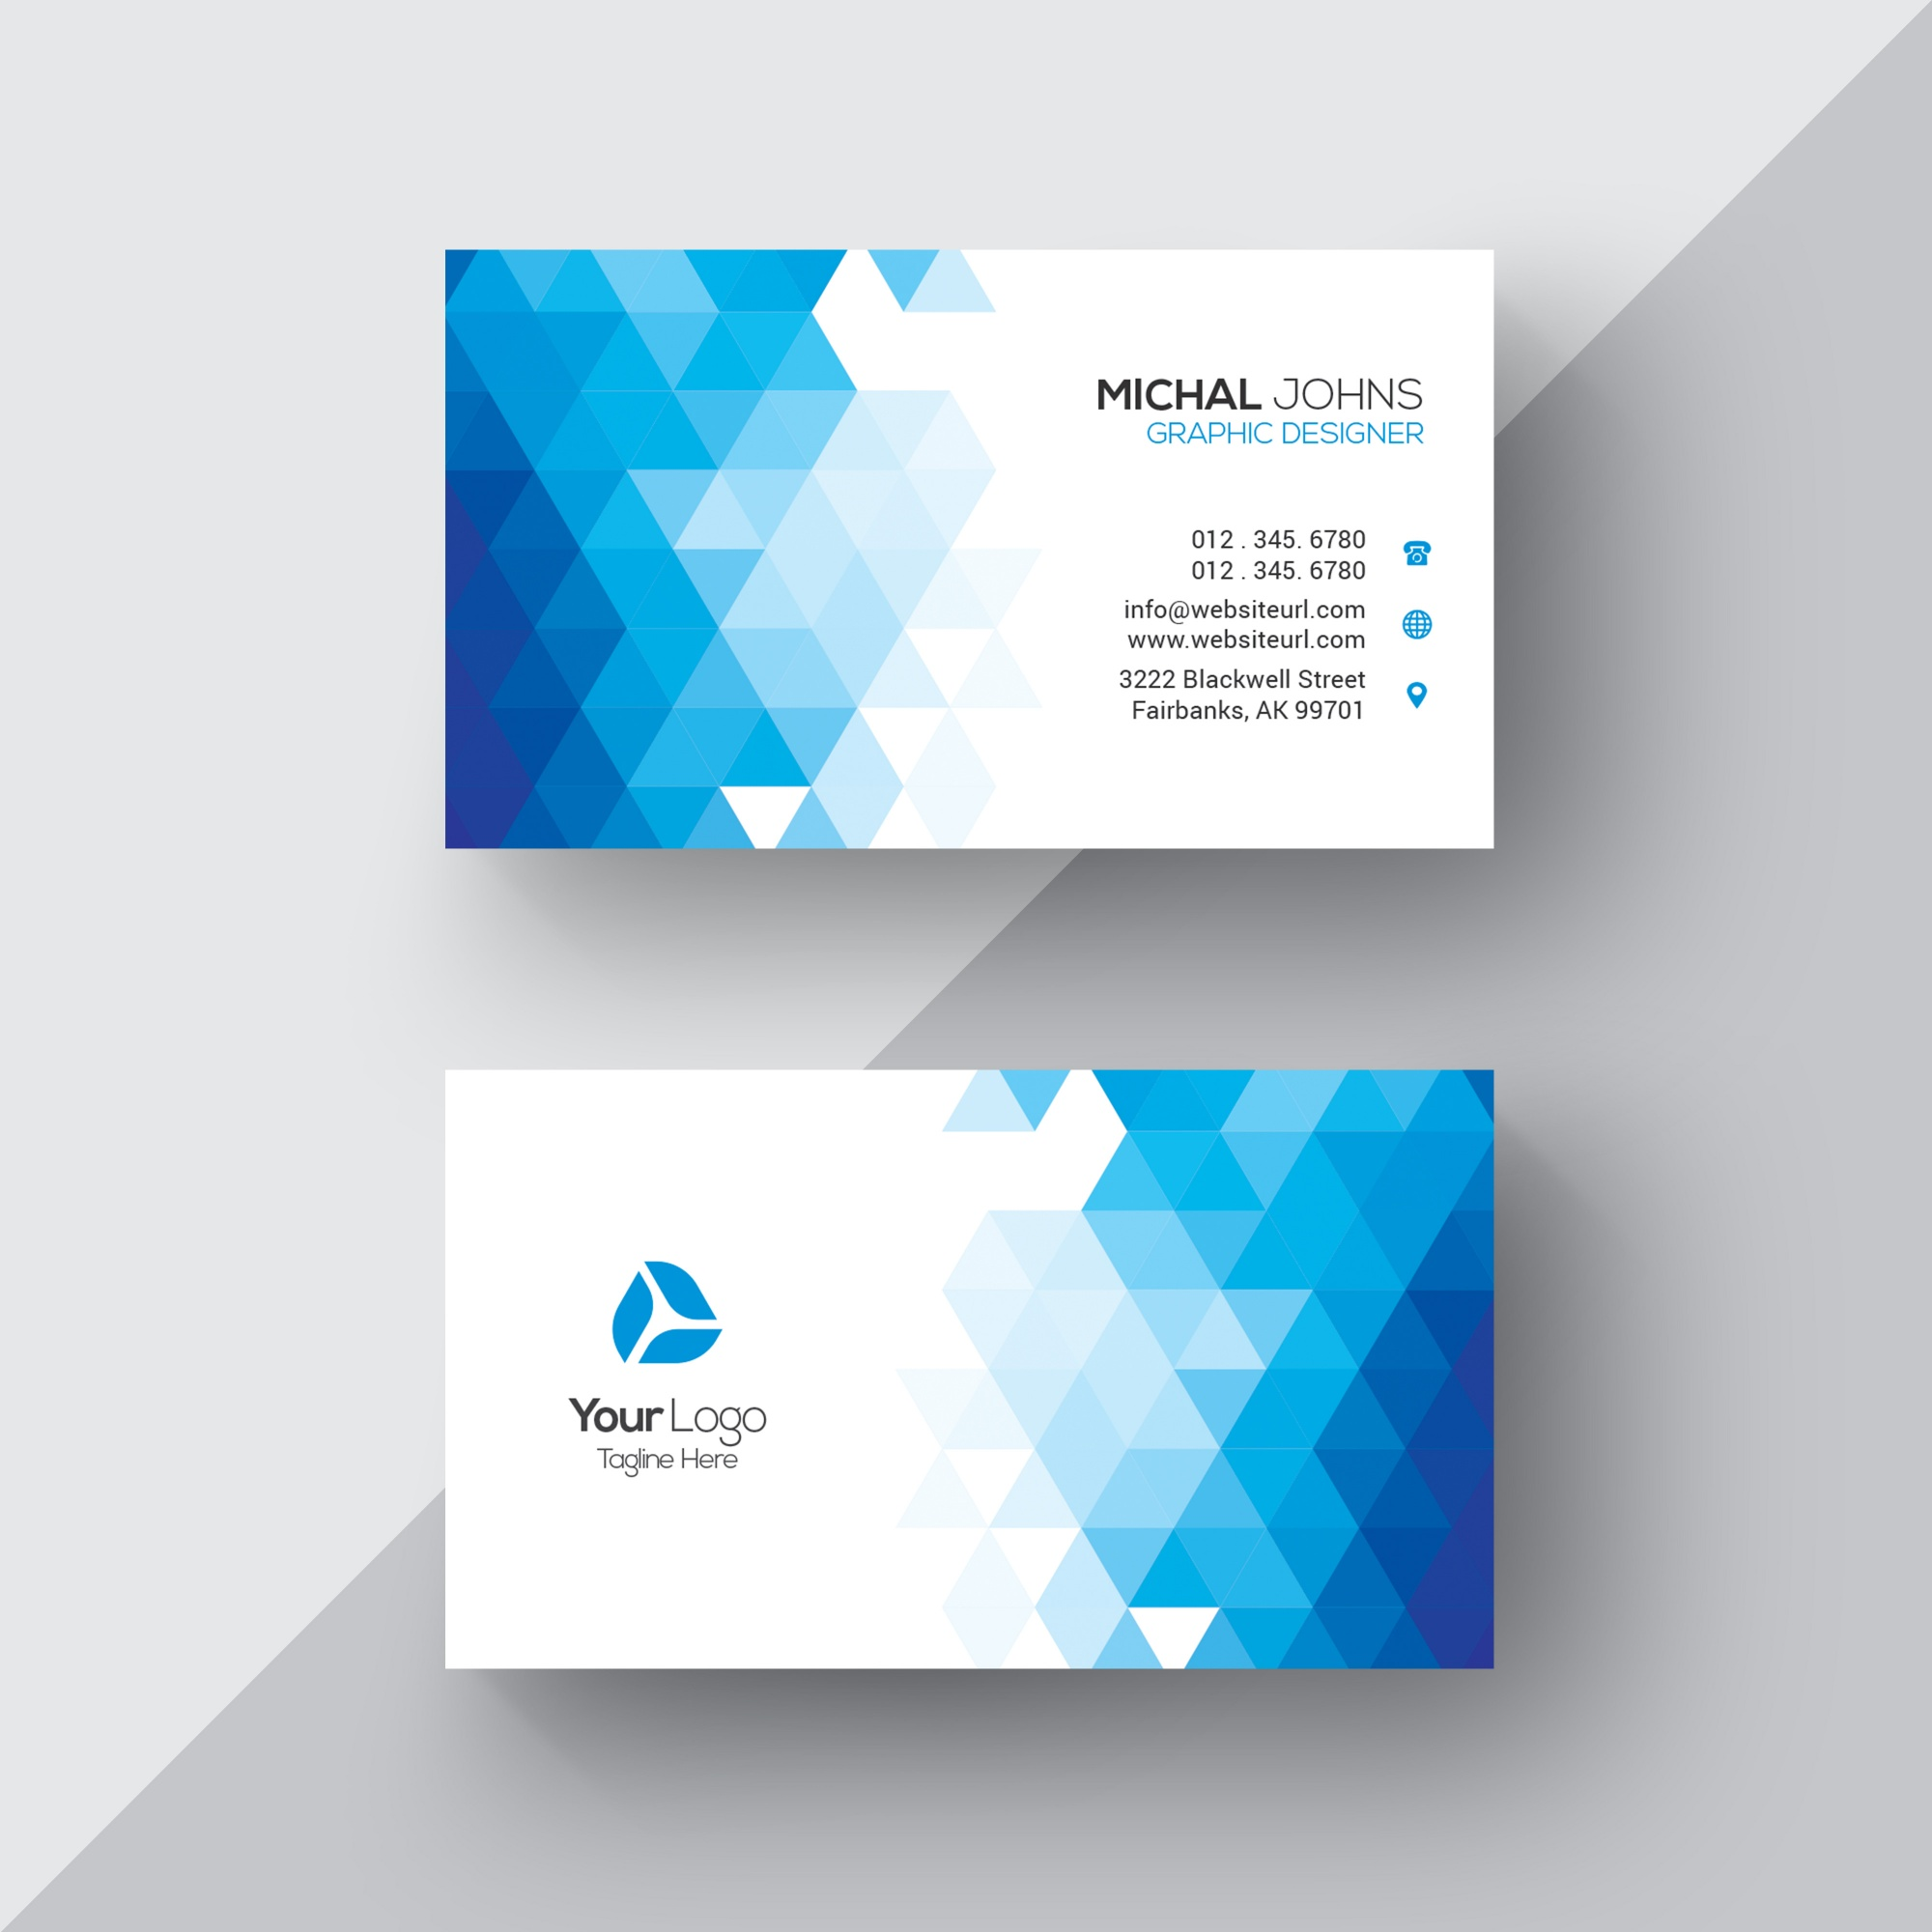 Blue and white geometric business card